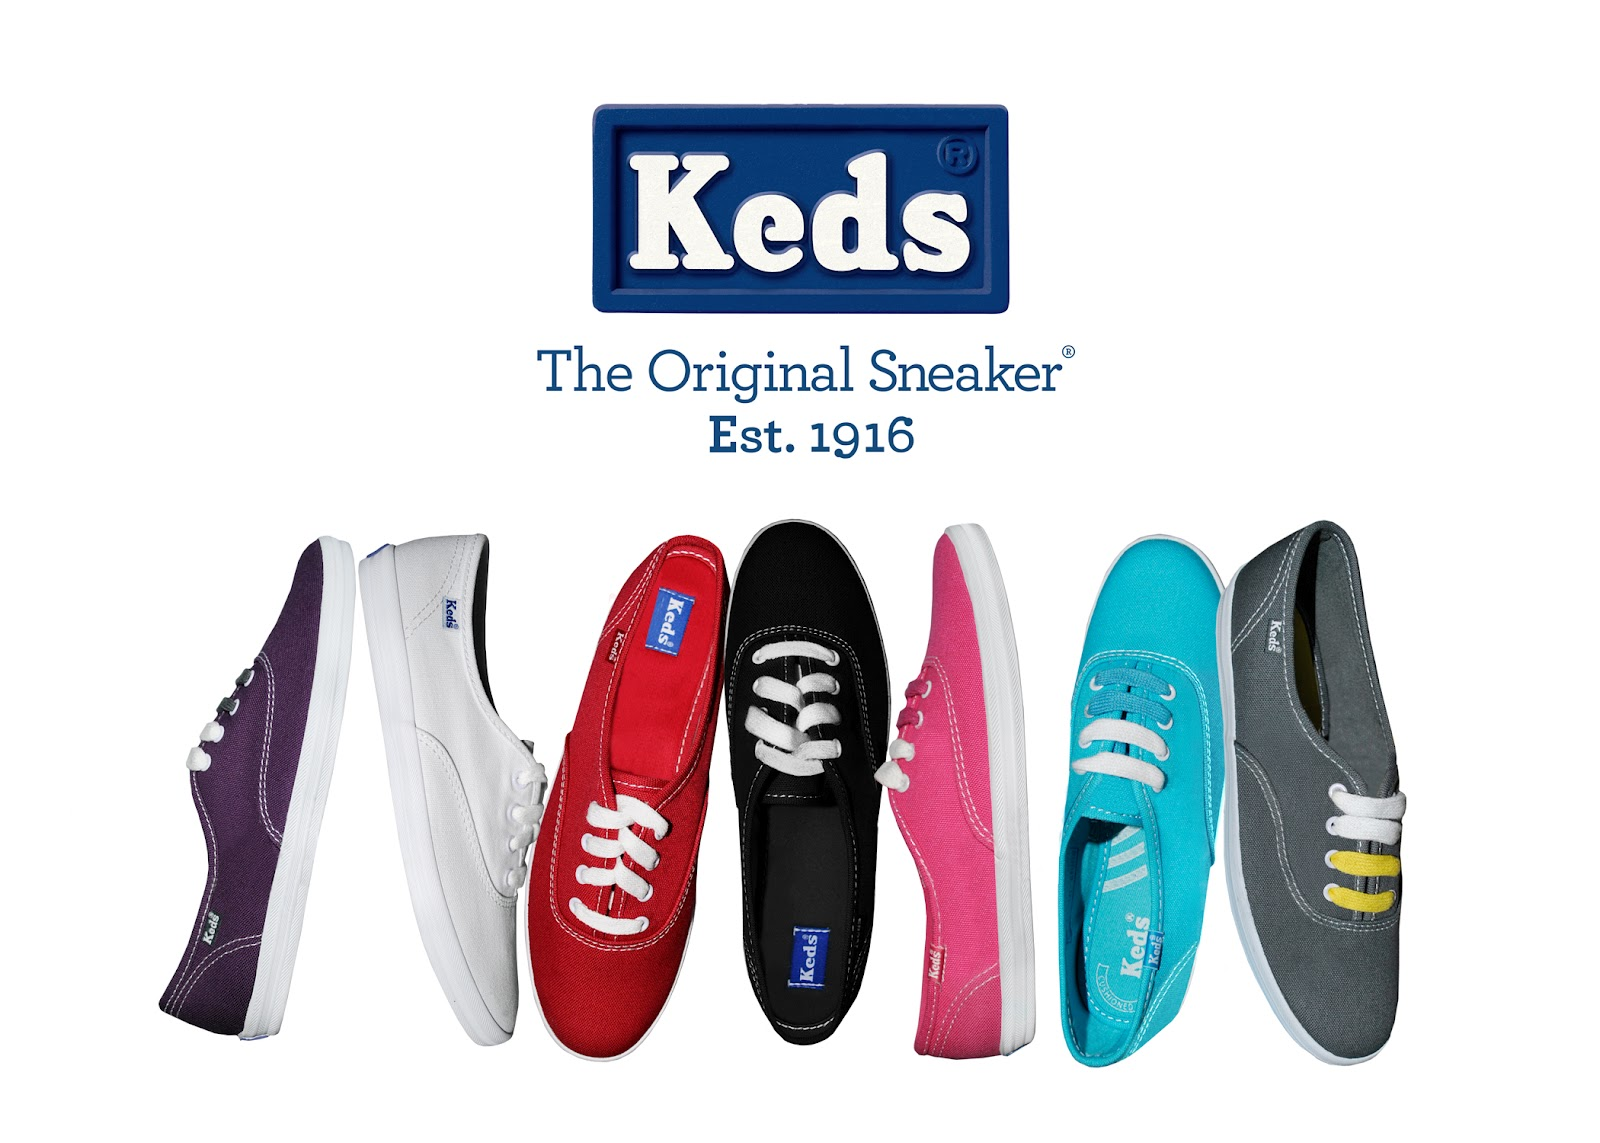 Keds The Original Sneaker Tendencies Kaos Jedi Saves Hitam S Today Is Seen On Hottest Celebrities Such As Anna Paquin Dita Von Teese Chris Colfer Emma Watson Natalie Portman Katy Perry And Kristen